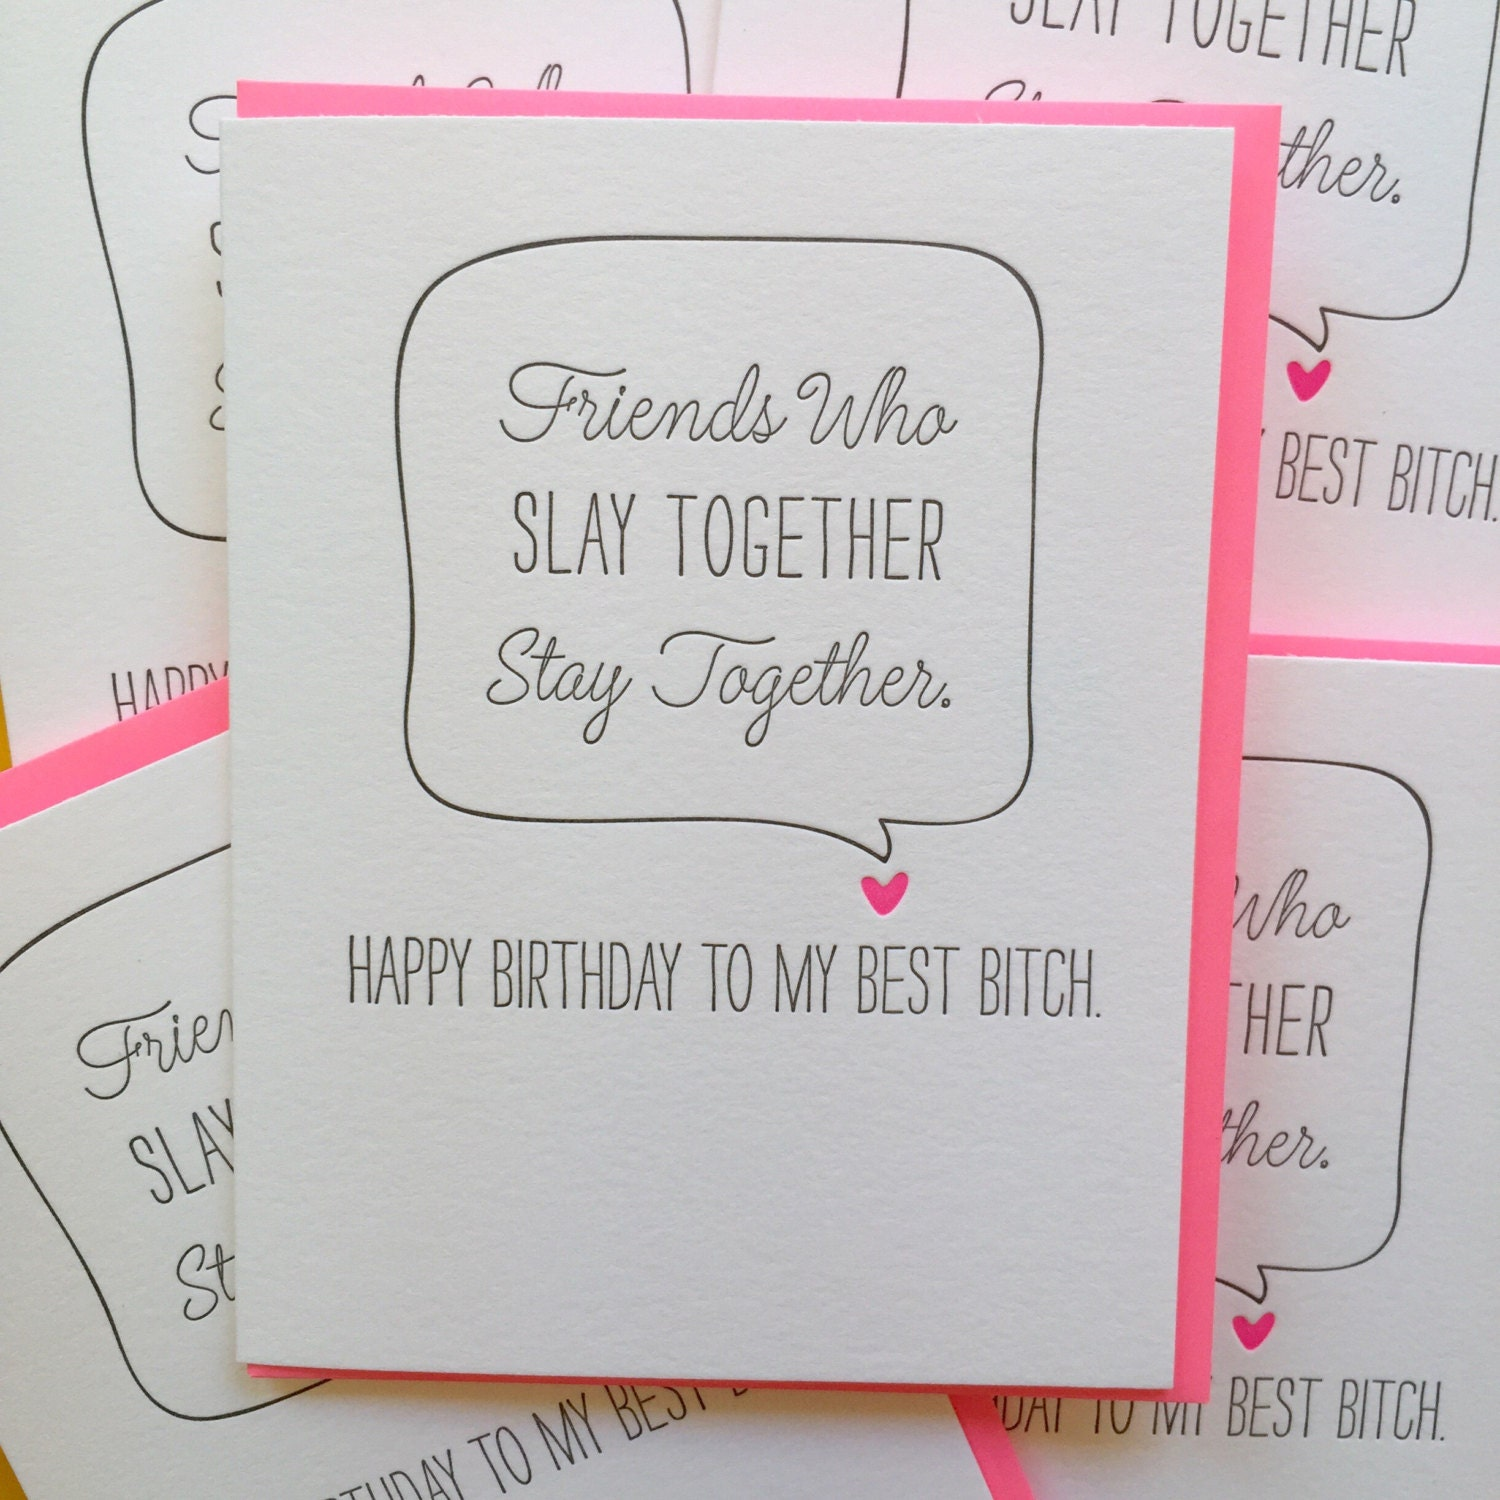 Lovely birthday cards for best friends pics eccleshallfc best friend birthday card best bitch card i slay card bookmarktalkfo Choice Image